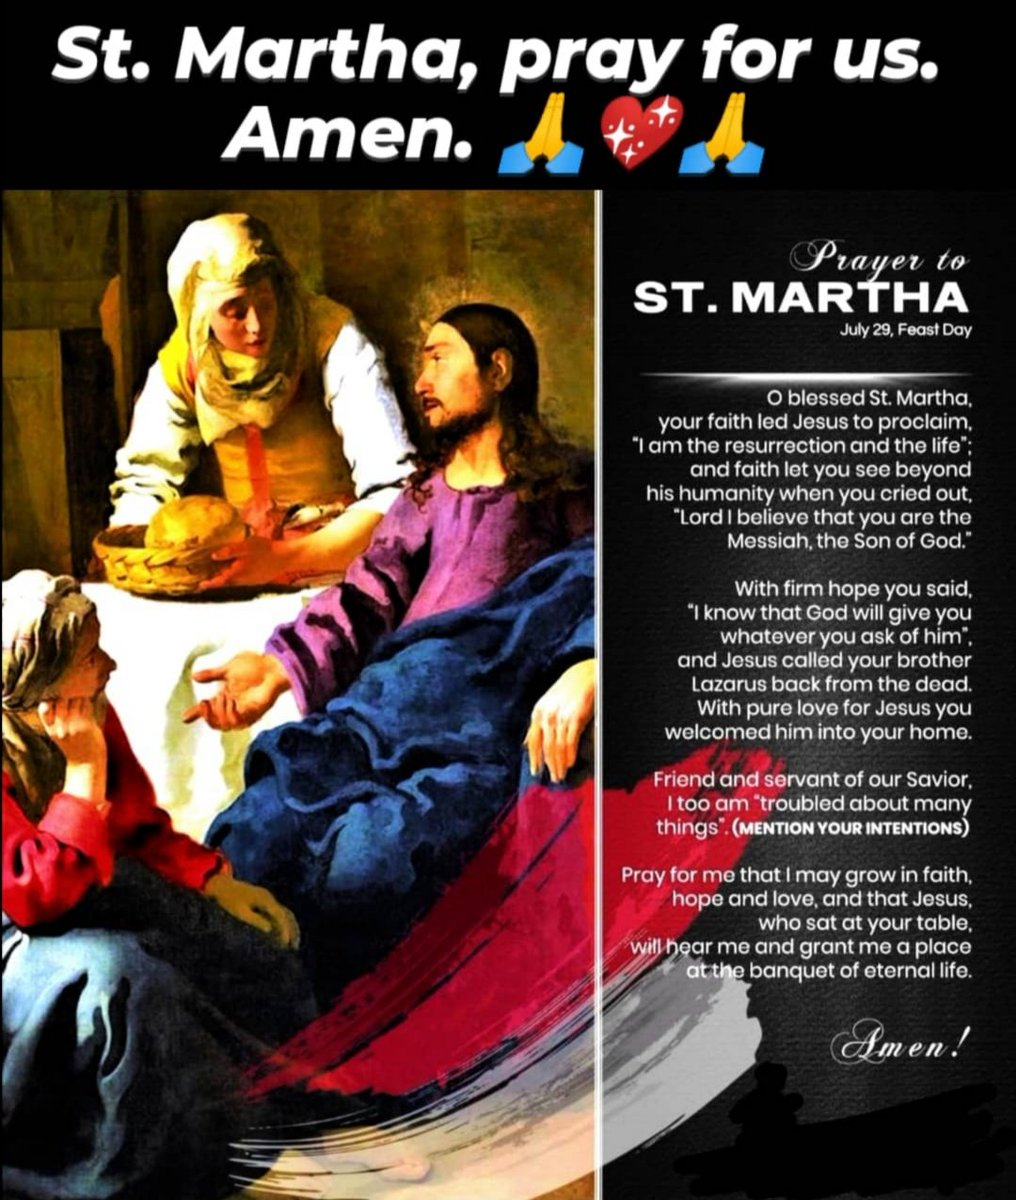 St. Martha, pray for us. Amen.  Blessed Feast of St. Martha.  Prayer to #SaintMartha #Prayer  #PrayerToSaintMartha #JourneyOfFaith #JourneyOfLife #EveryDayIsAJourney #LifeIsTravel #Travel #Backpacking #AuthenticTravel #TravelInspiration #COVID19 #NewNormal #StaySafepic.twitter.com/1uwNUrx5a6